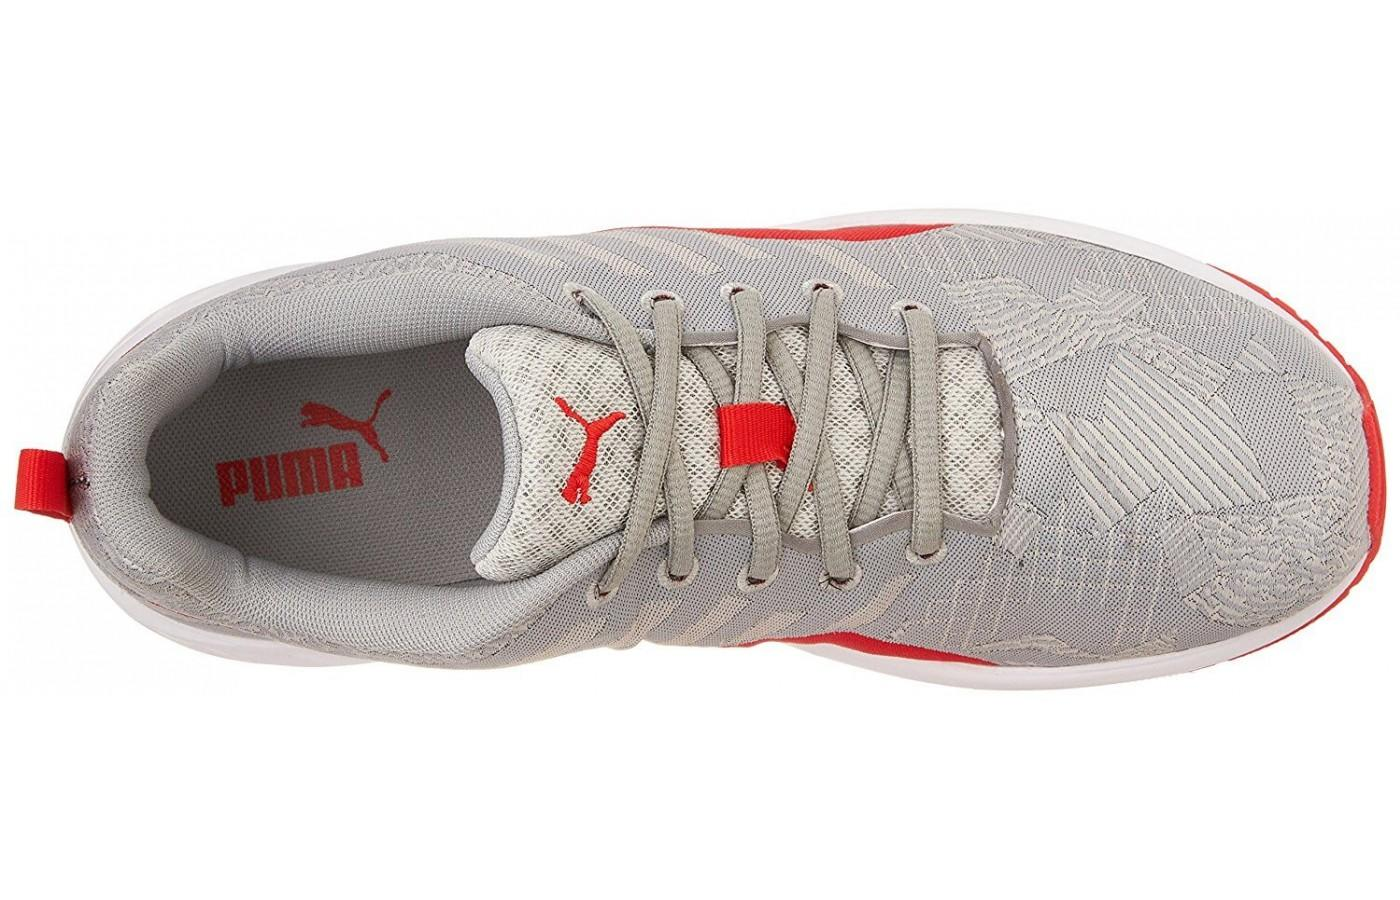 The Puma Flare has traditional laces